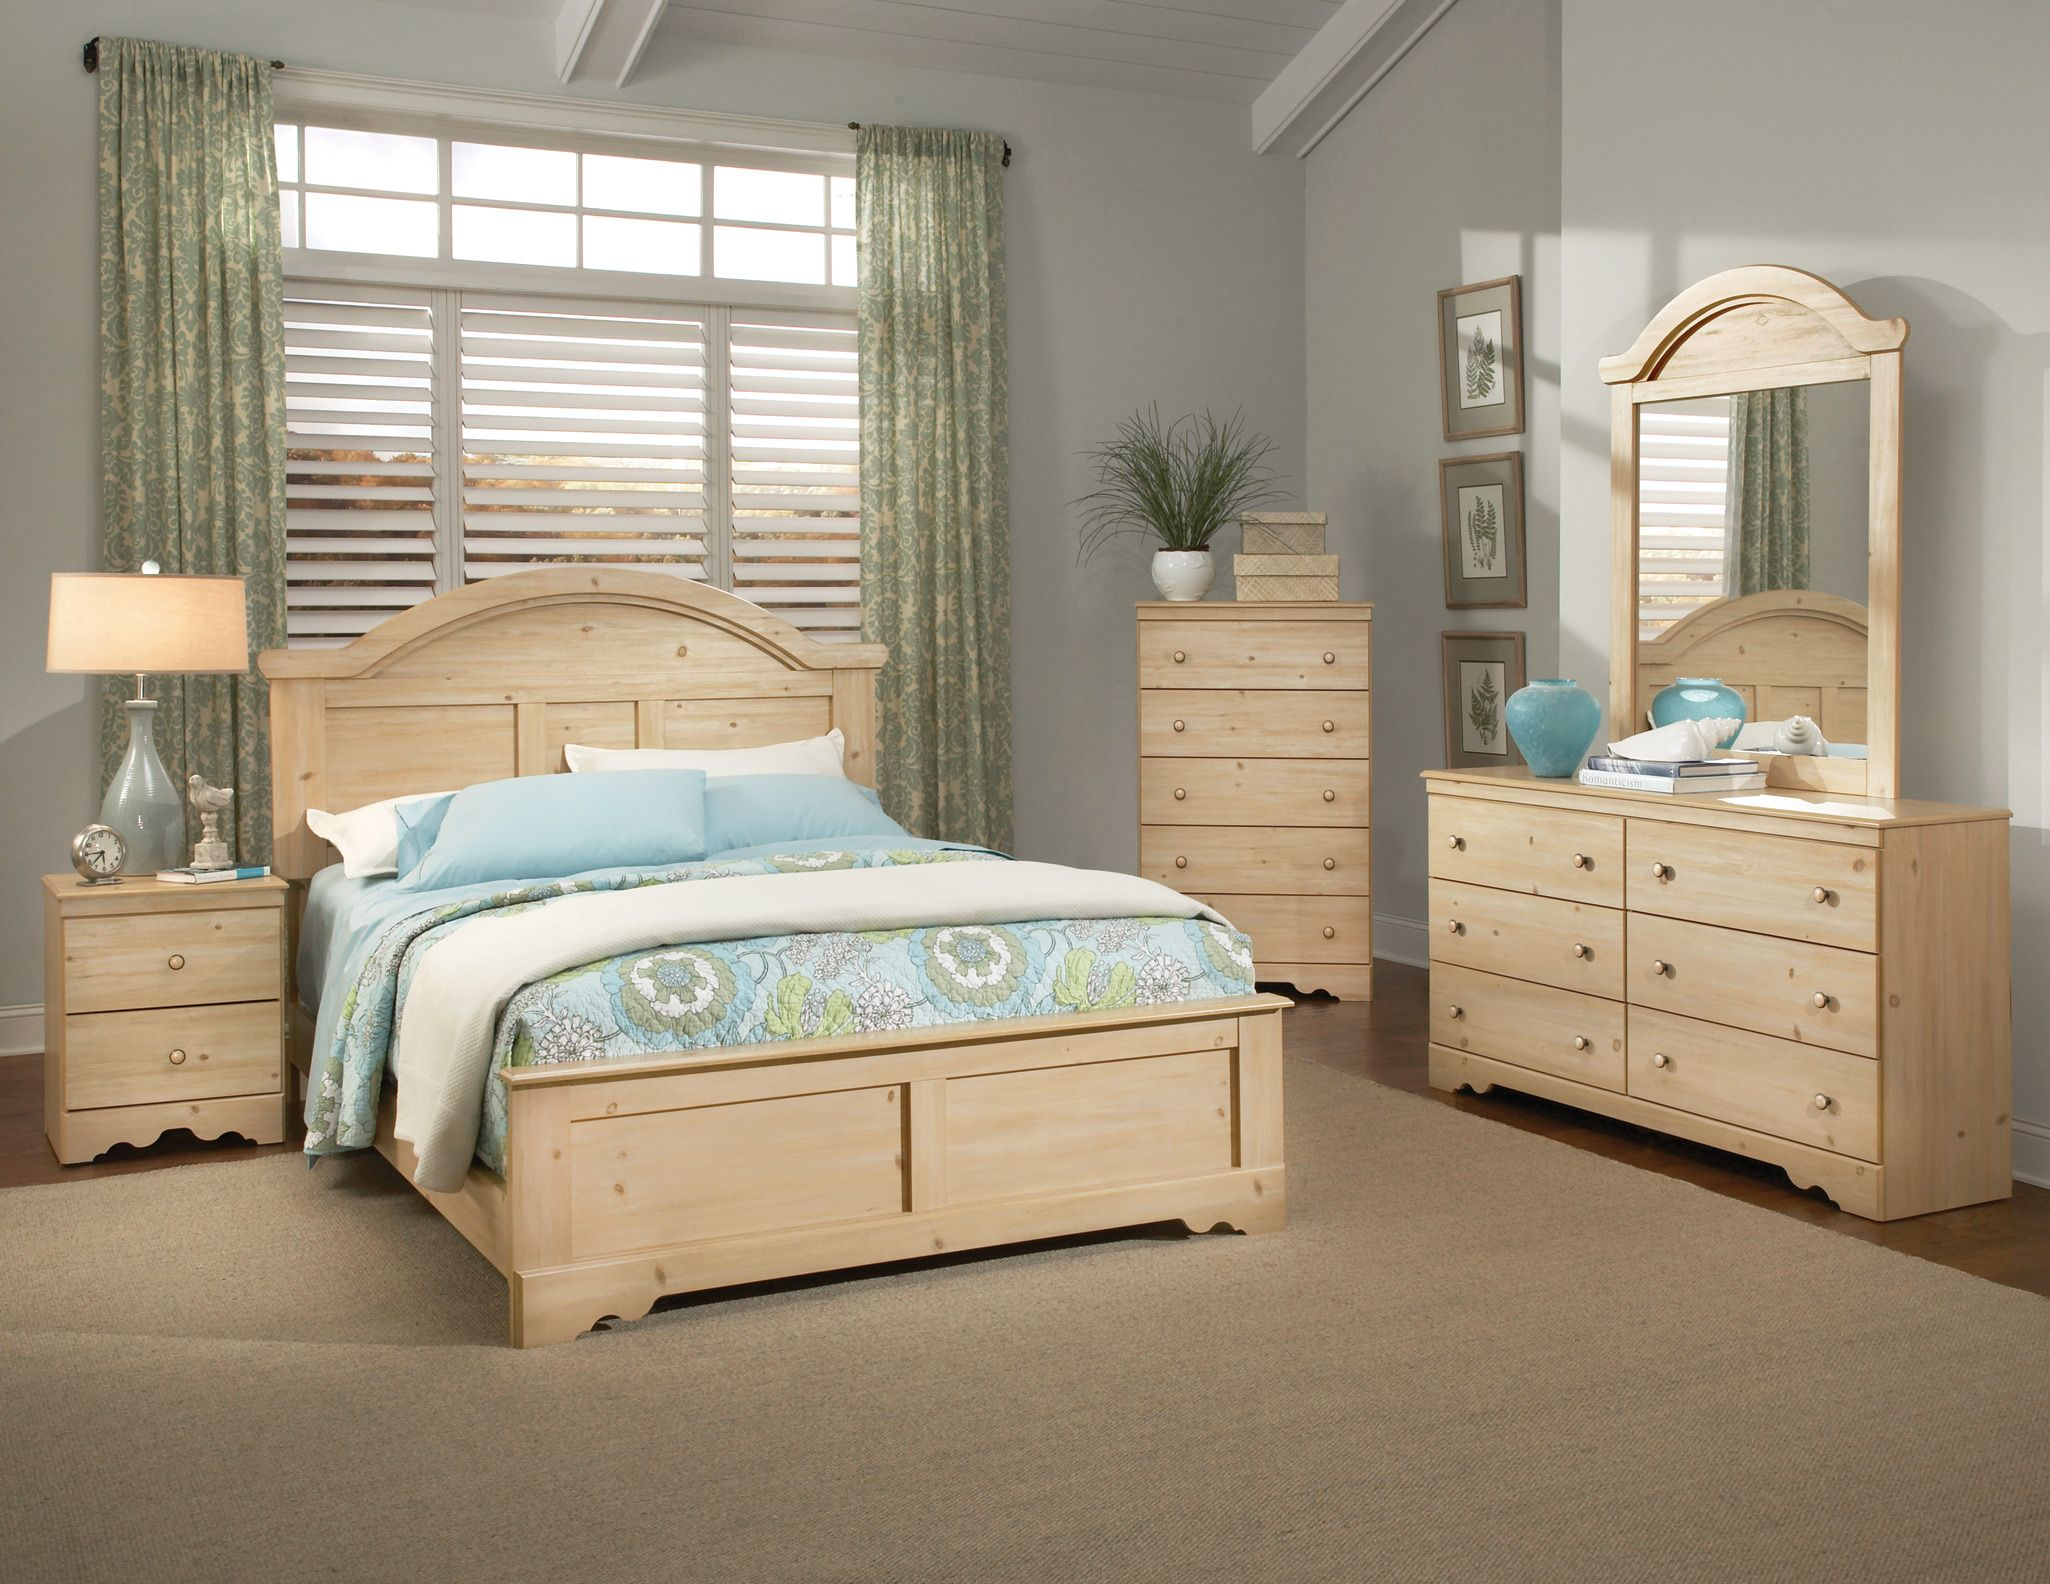 Bedroom furniture sets pine design ideas 2017 2018 for Bedroom and furniture